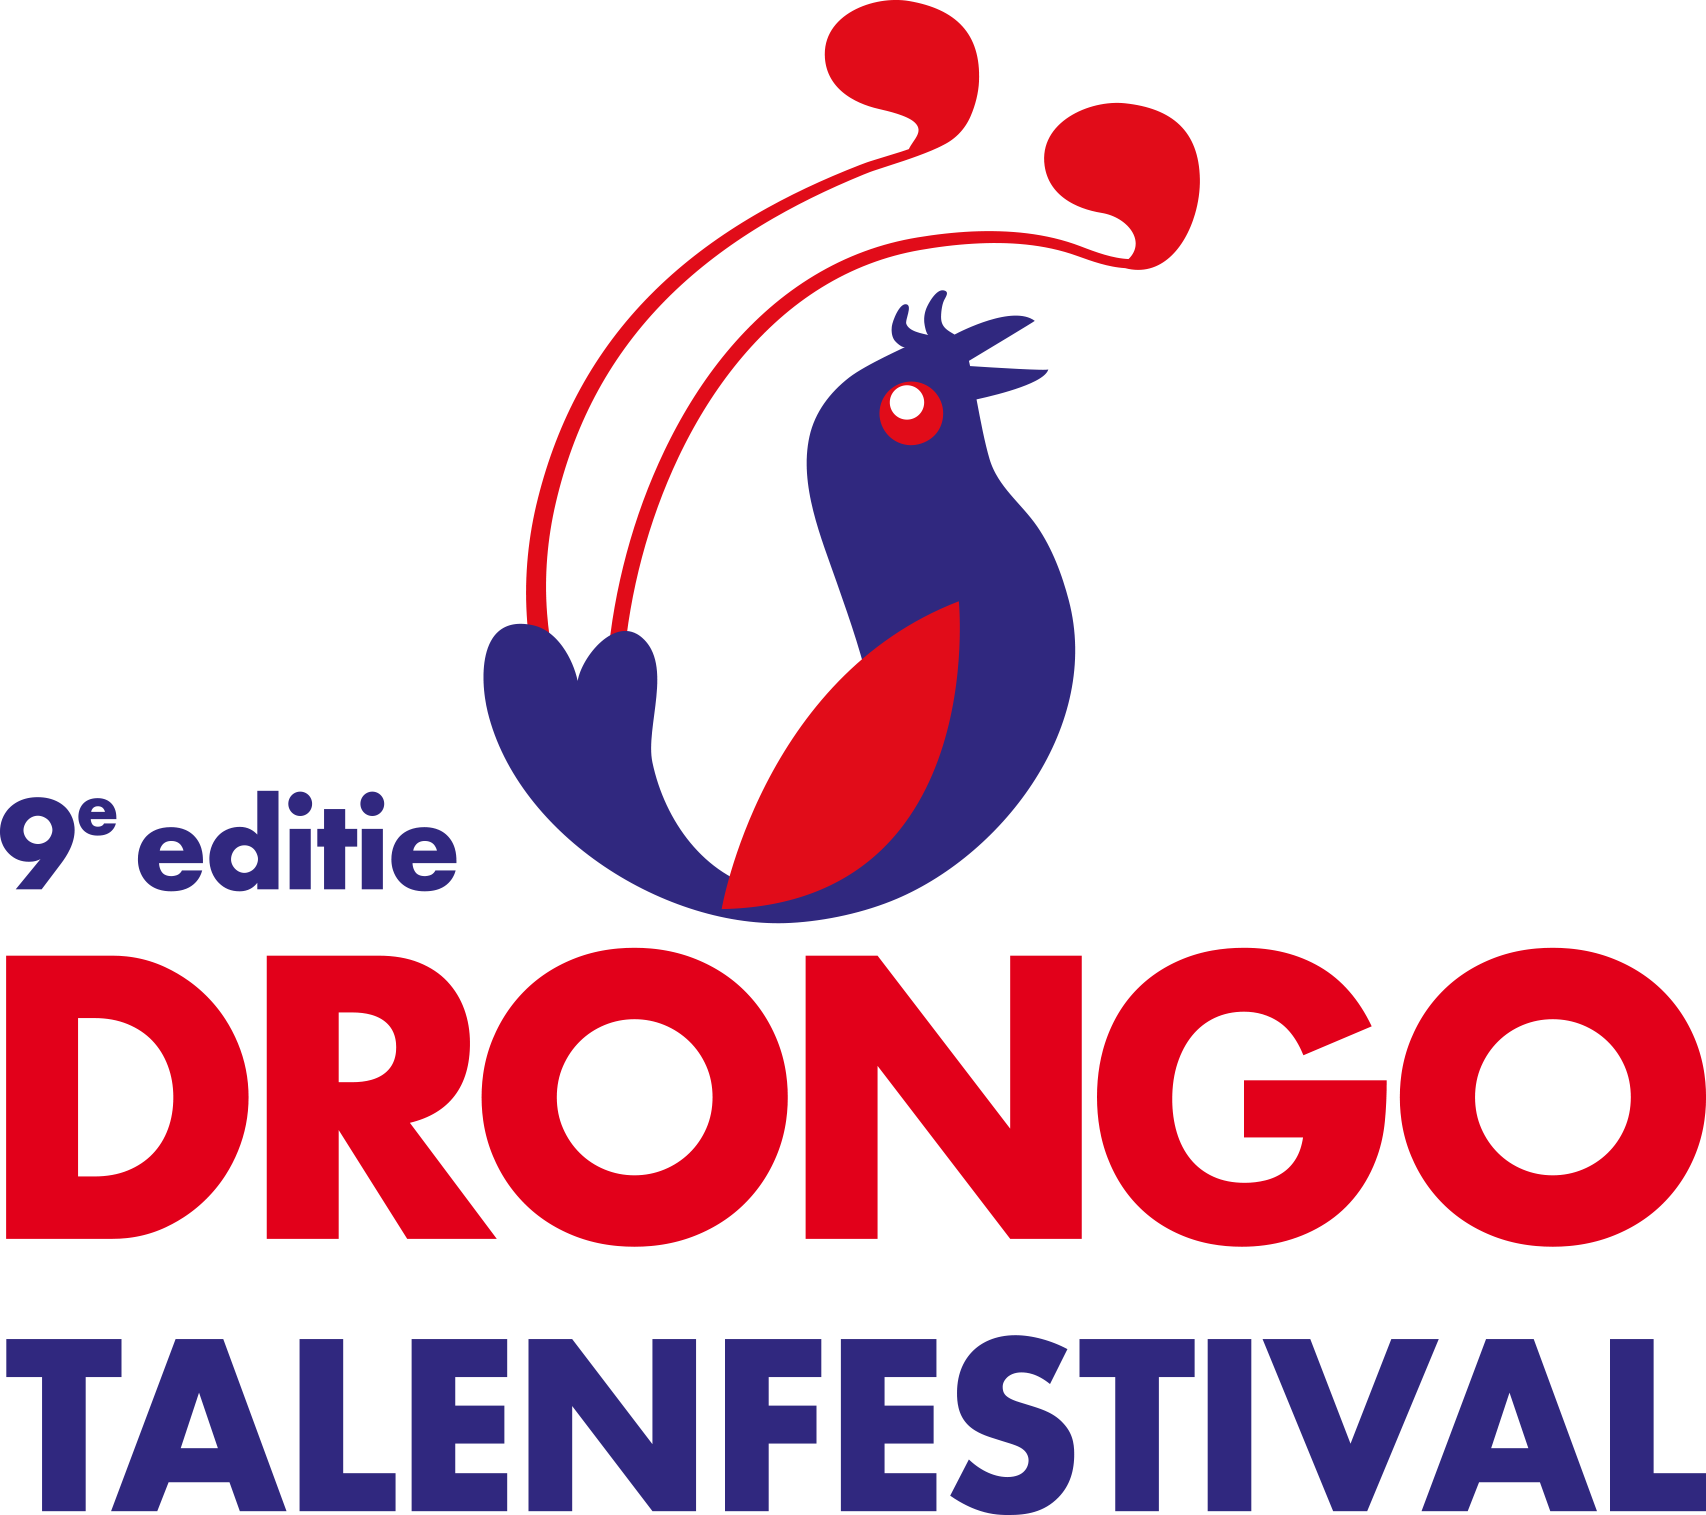 DRONGO talenfestival 2020